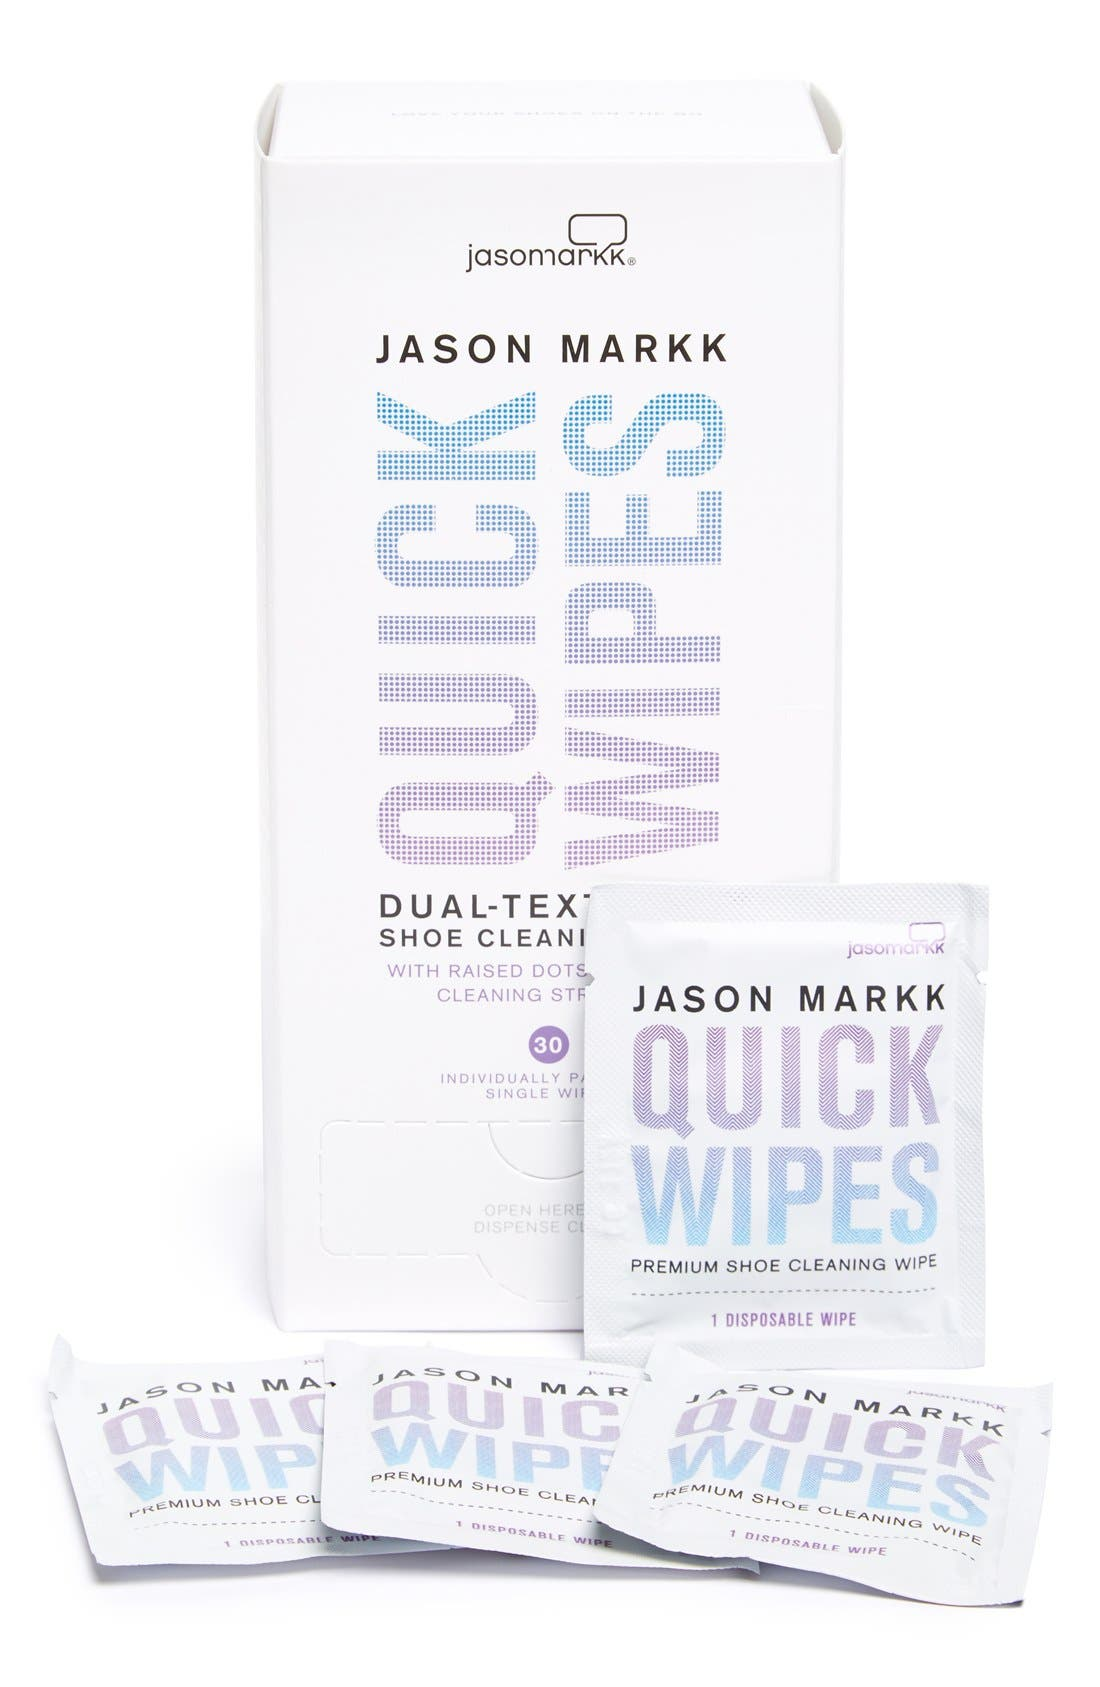 Jason Markk 'Quick Wipes' Shoe Cleaning Wipes (30-Pack)